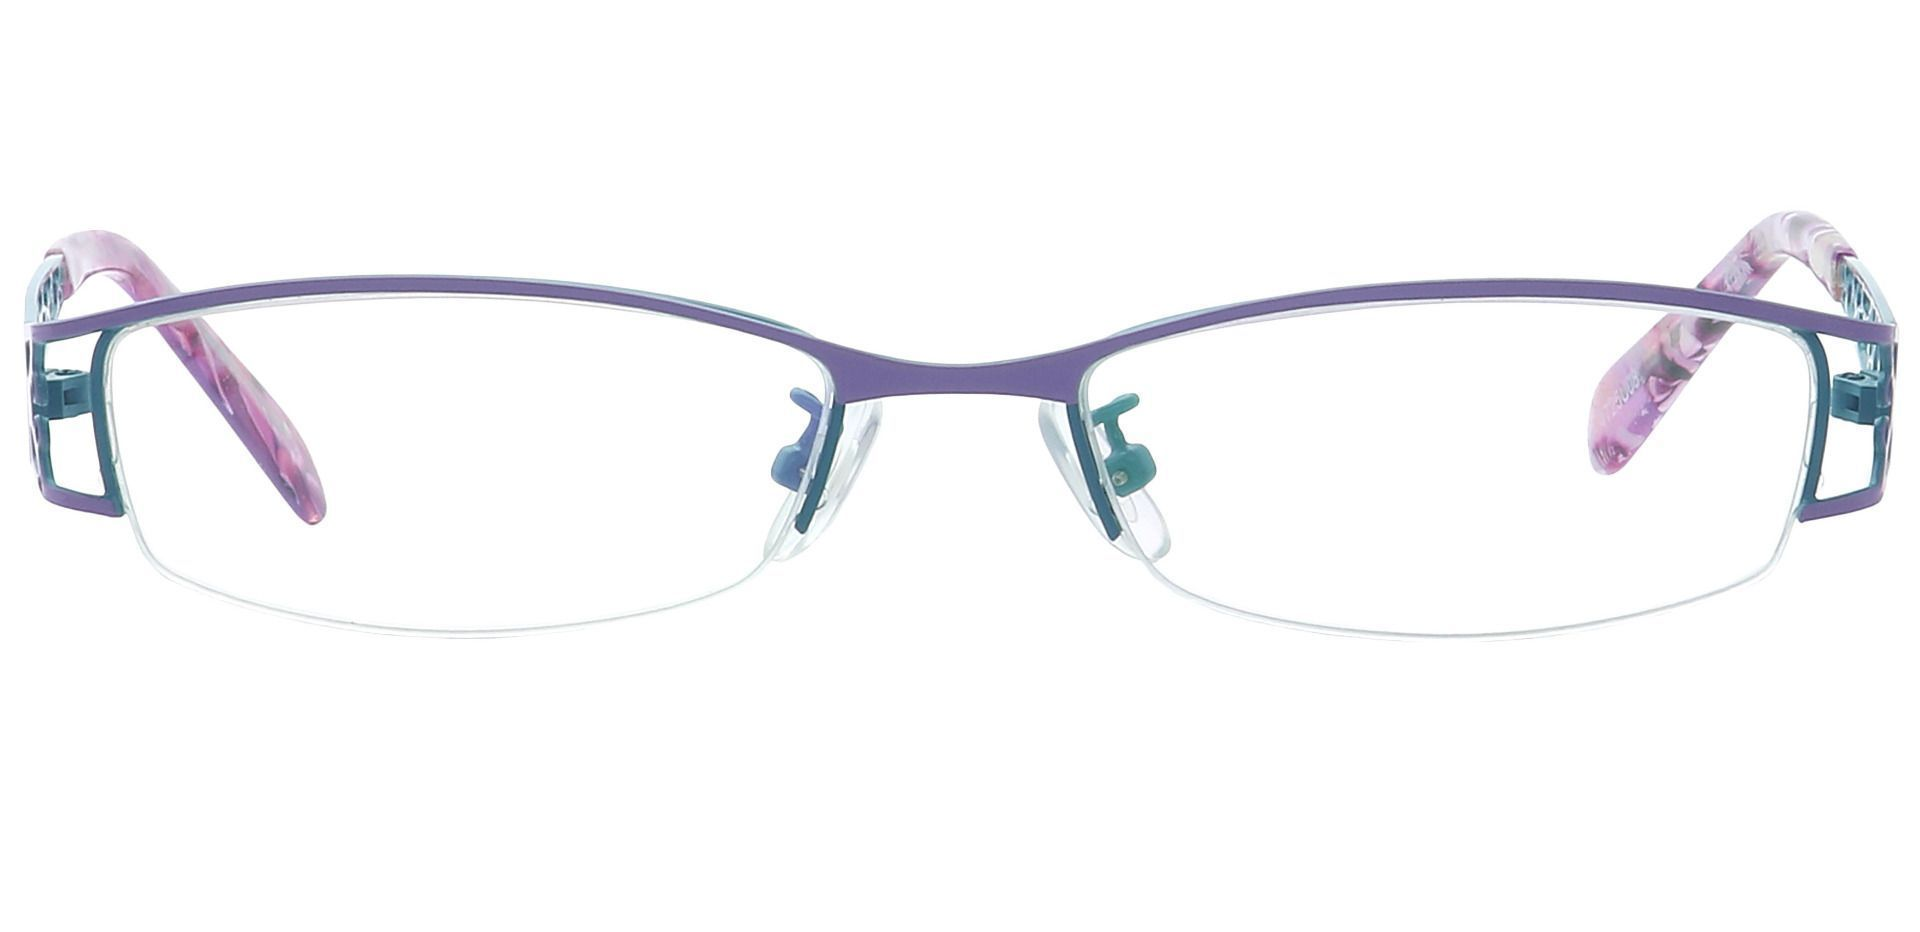 May Rectangle Single Vision Glasses - Blue